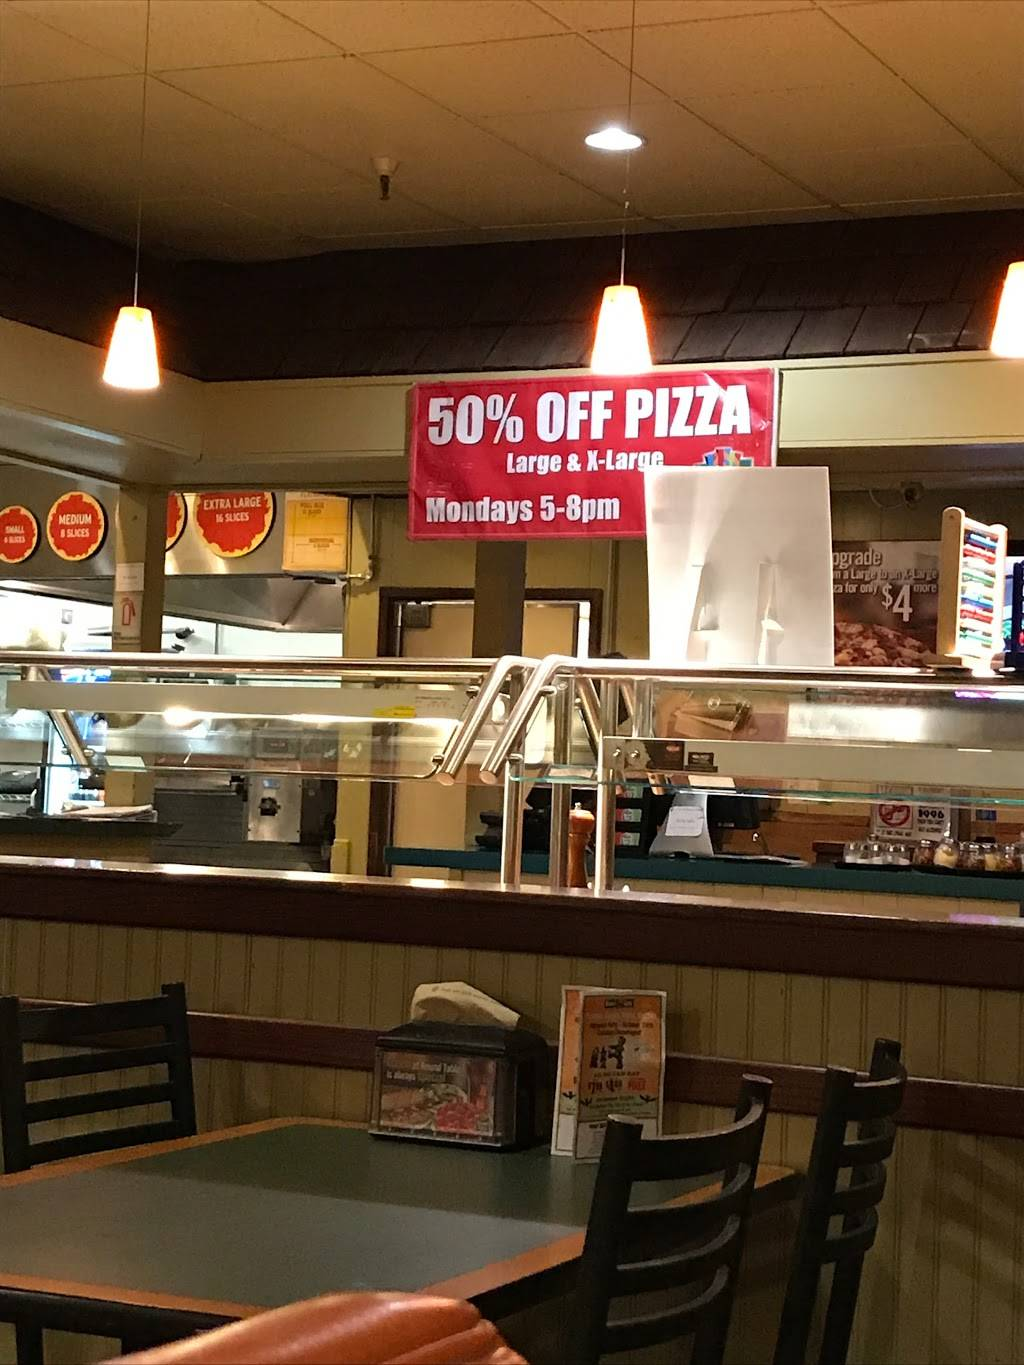 Round Table Pizza | meal delivery | 3291 Truxel Rd, Sacramento, CA 95833, USA | 9166481790 OR +1 916-648-1790